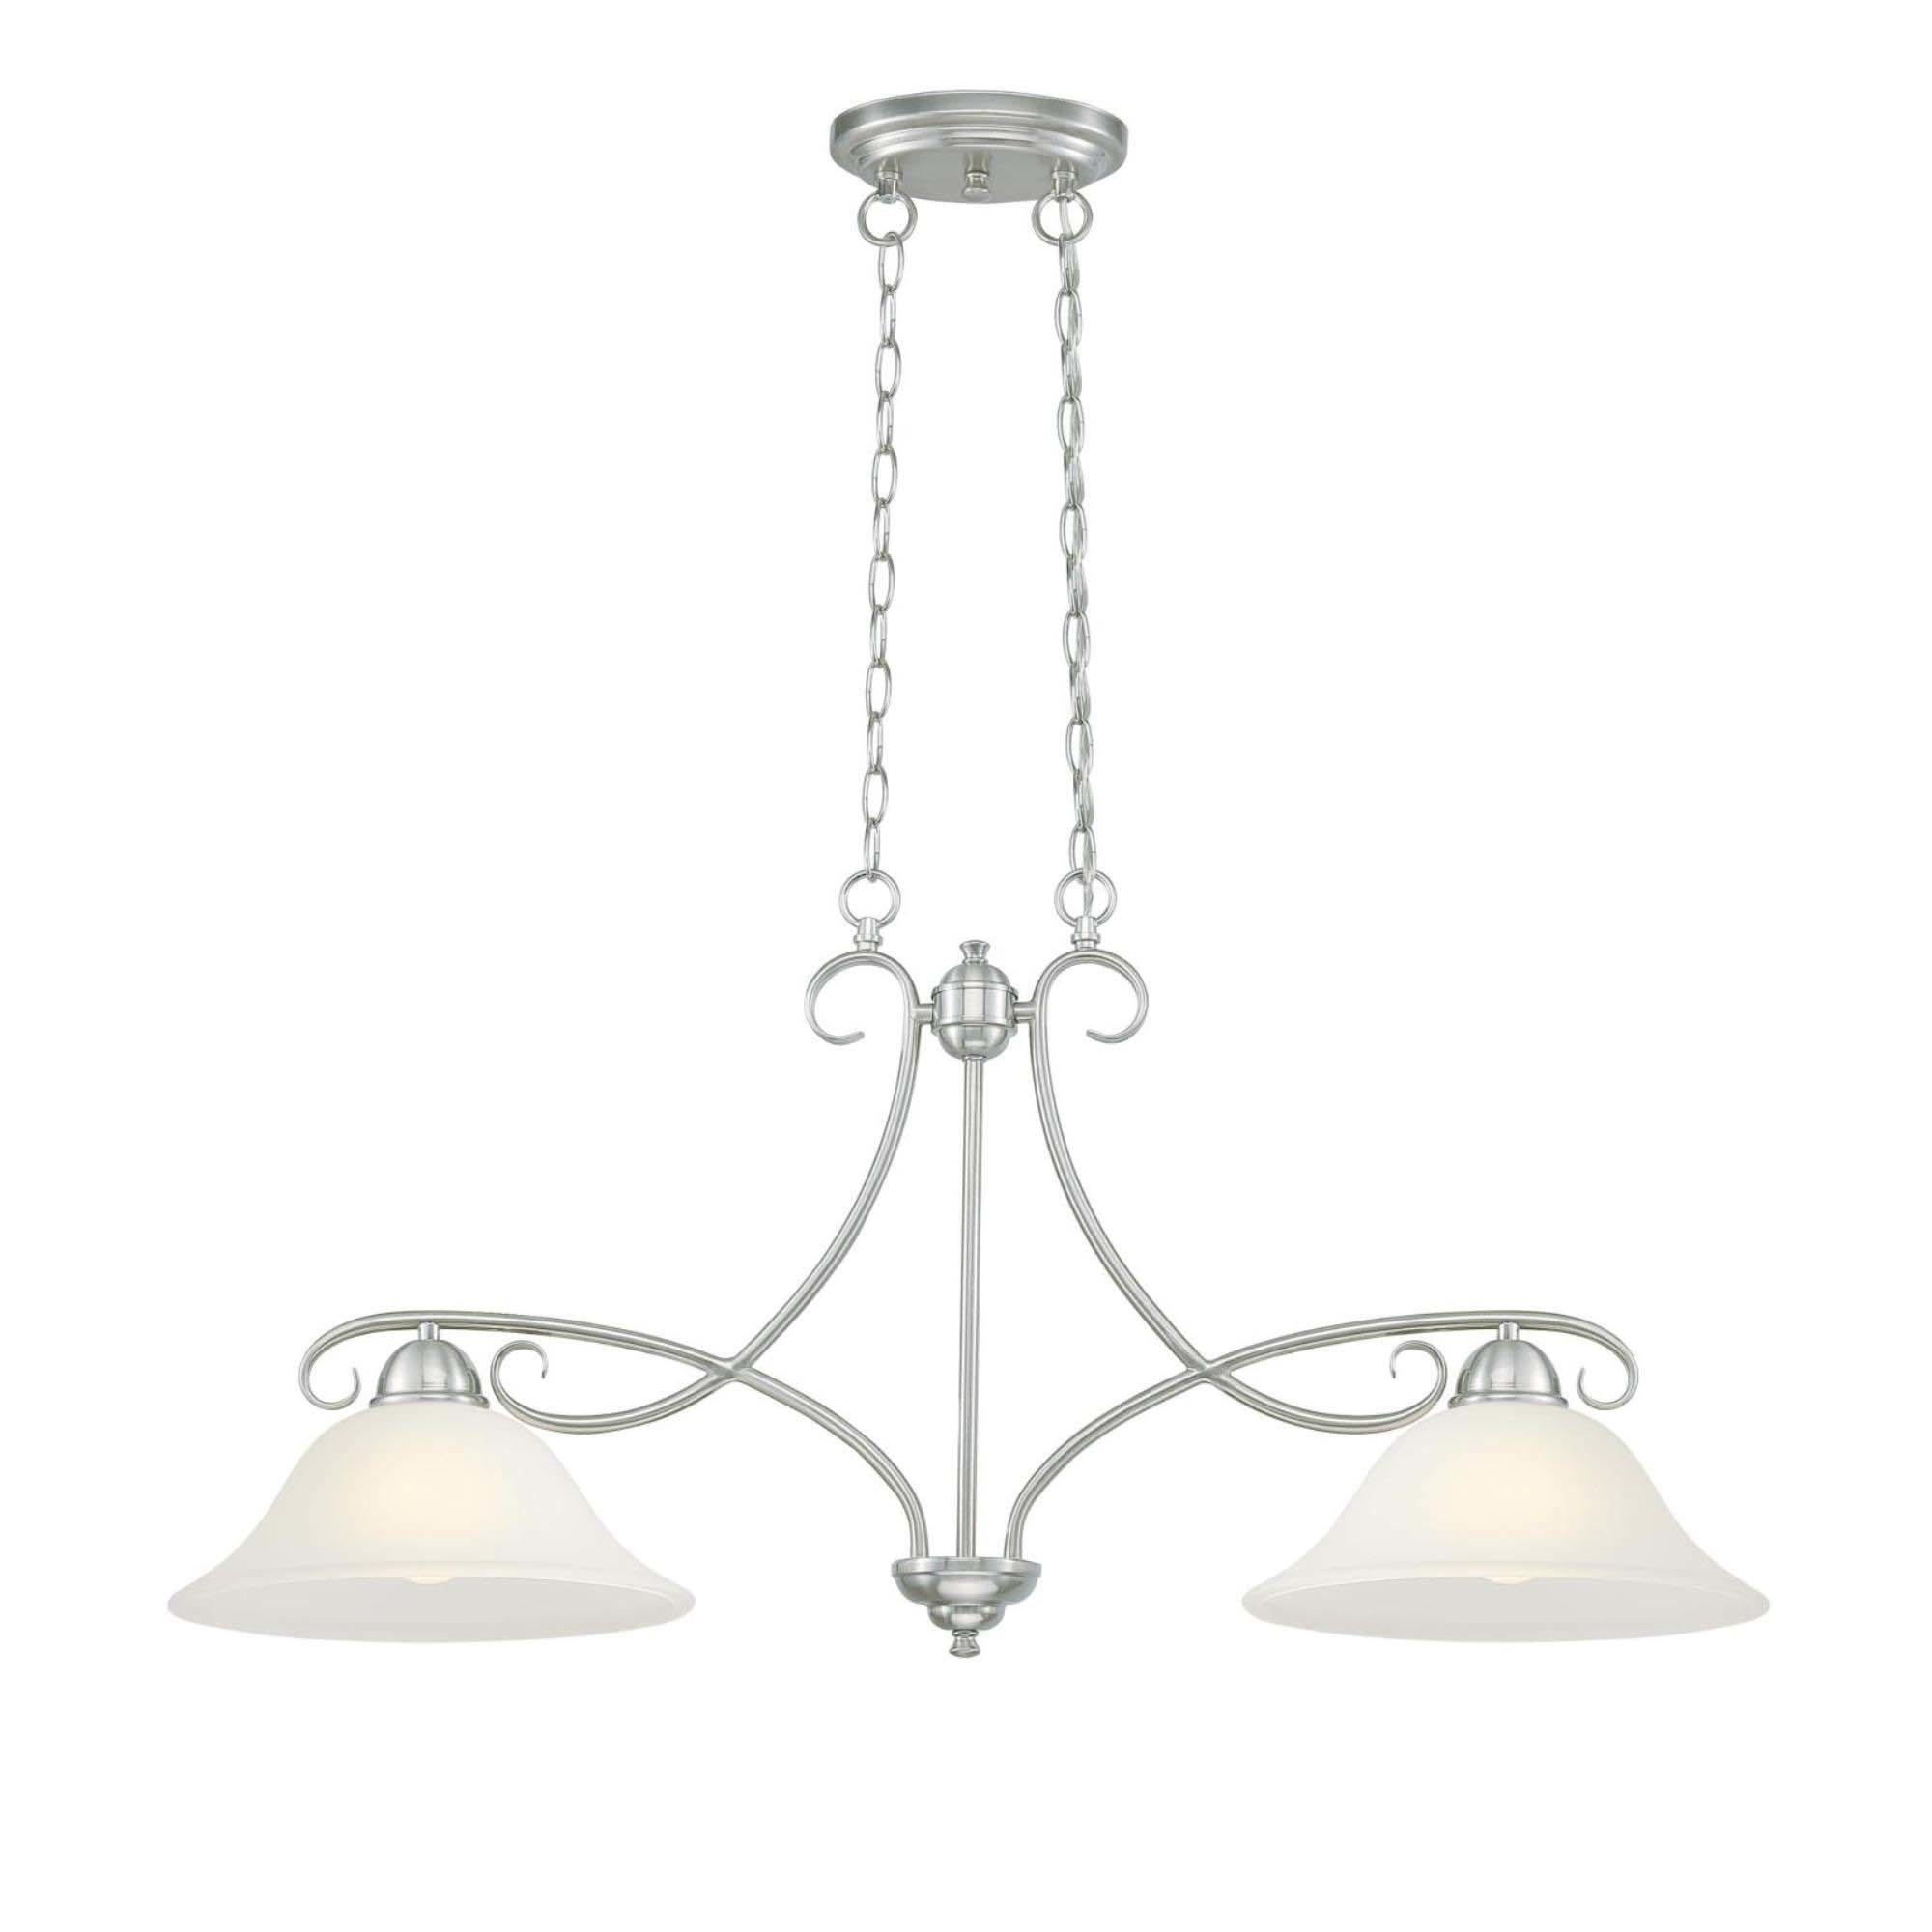 Westinghouse Lighting 6573900 Dunmore Two Light Indoor Island Pendant Brushed Nickel Finish With Frosted Glass Walmart Com Walmart Com